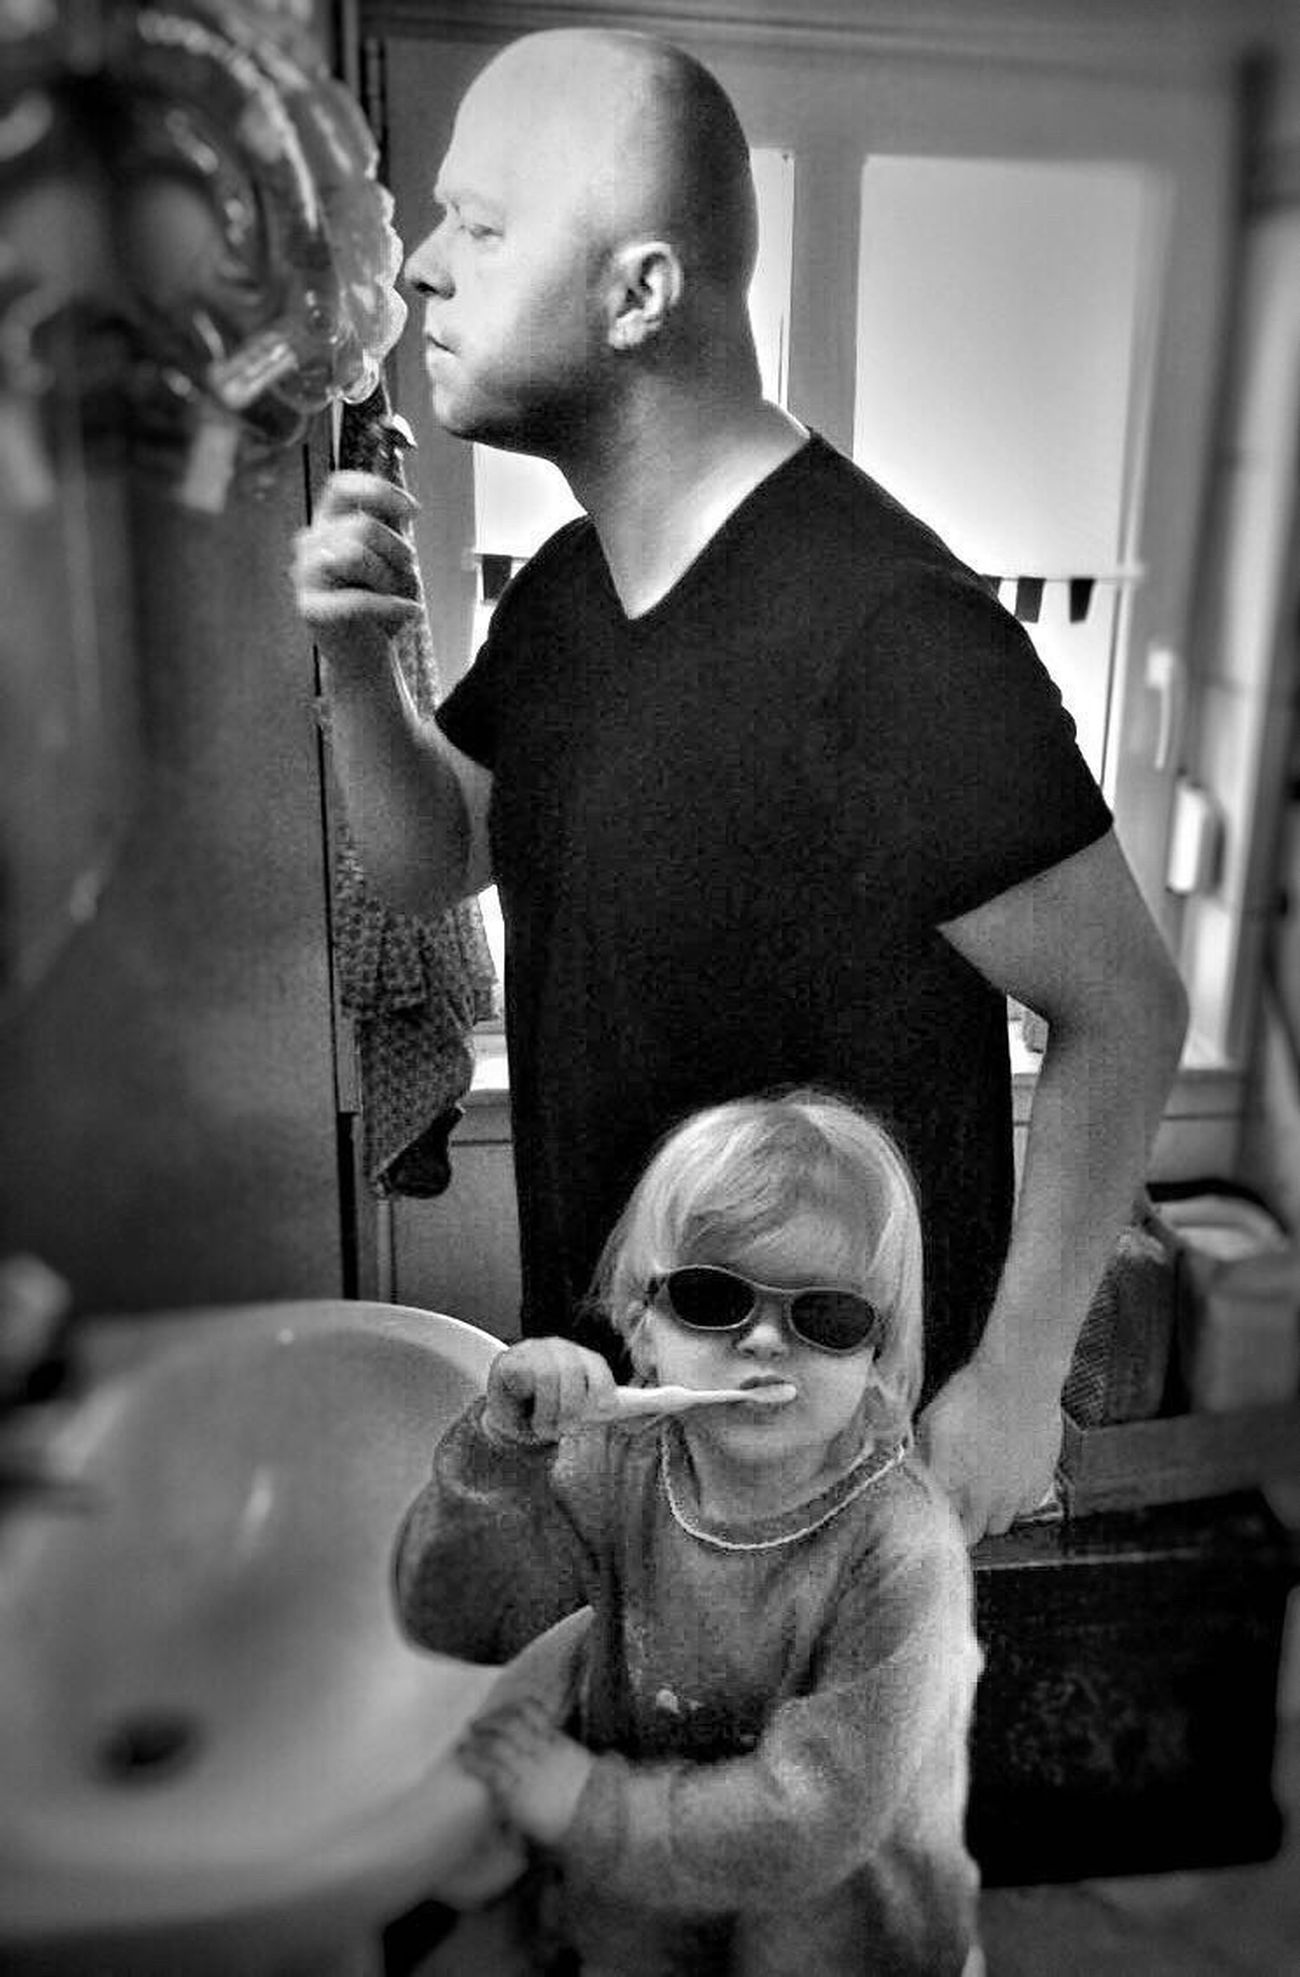 Vater Und Tochter Kinder Kids Children Funny Bathroom Zähneputzen Spaß Love Parents Kids Being Kids Children Photography The Portraitist - 2016 EyeEm Awards Fresh On Eyeem  Hello World